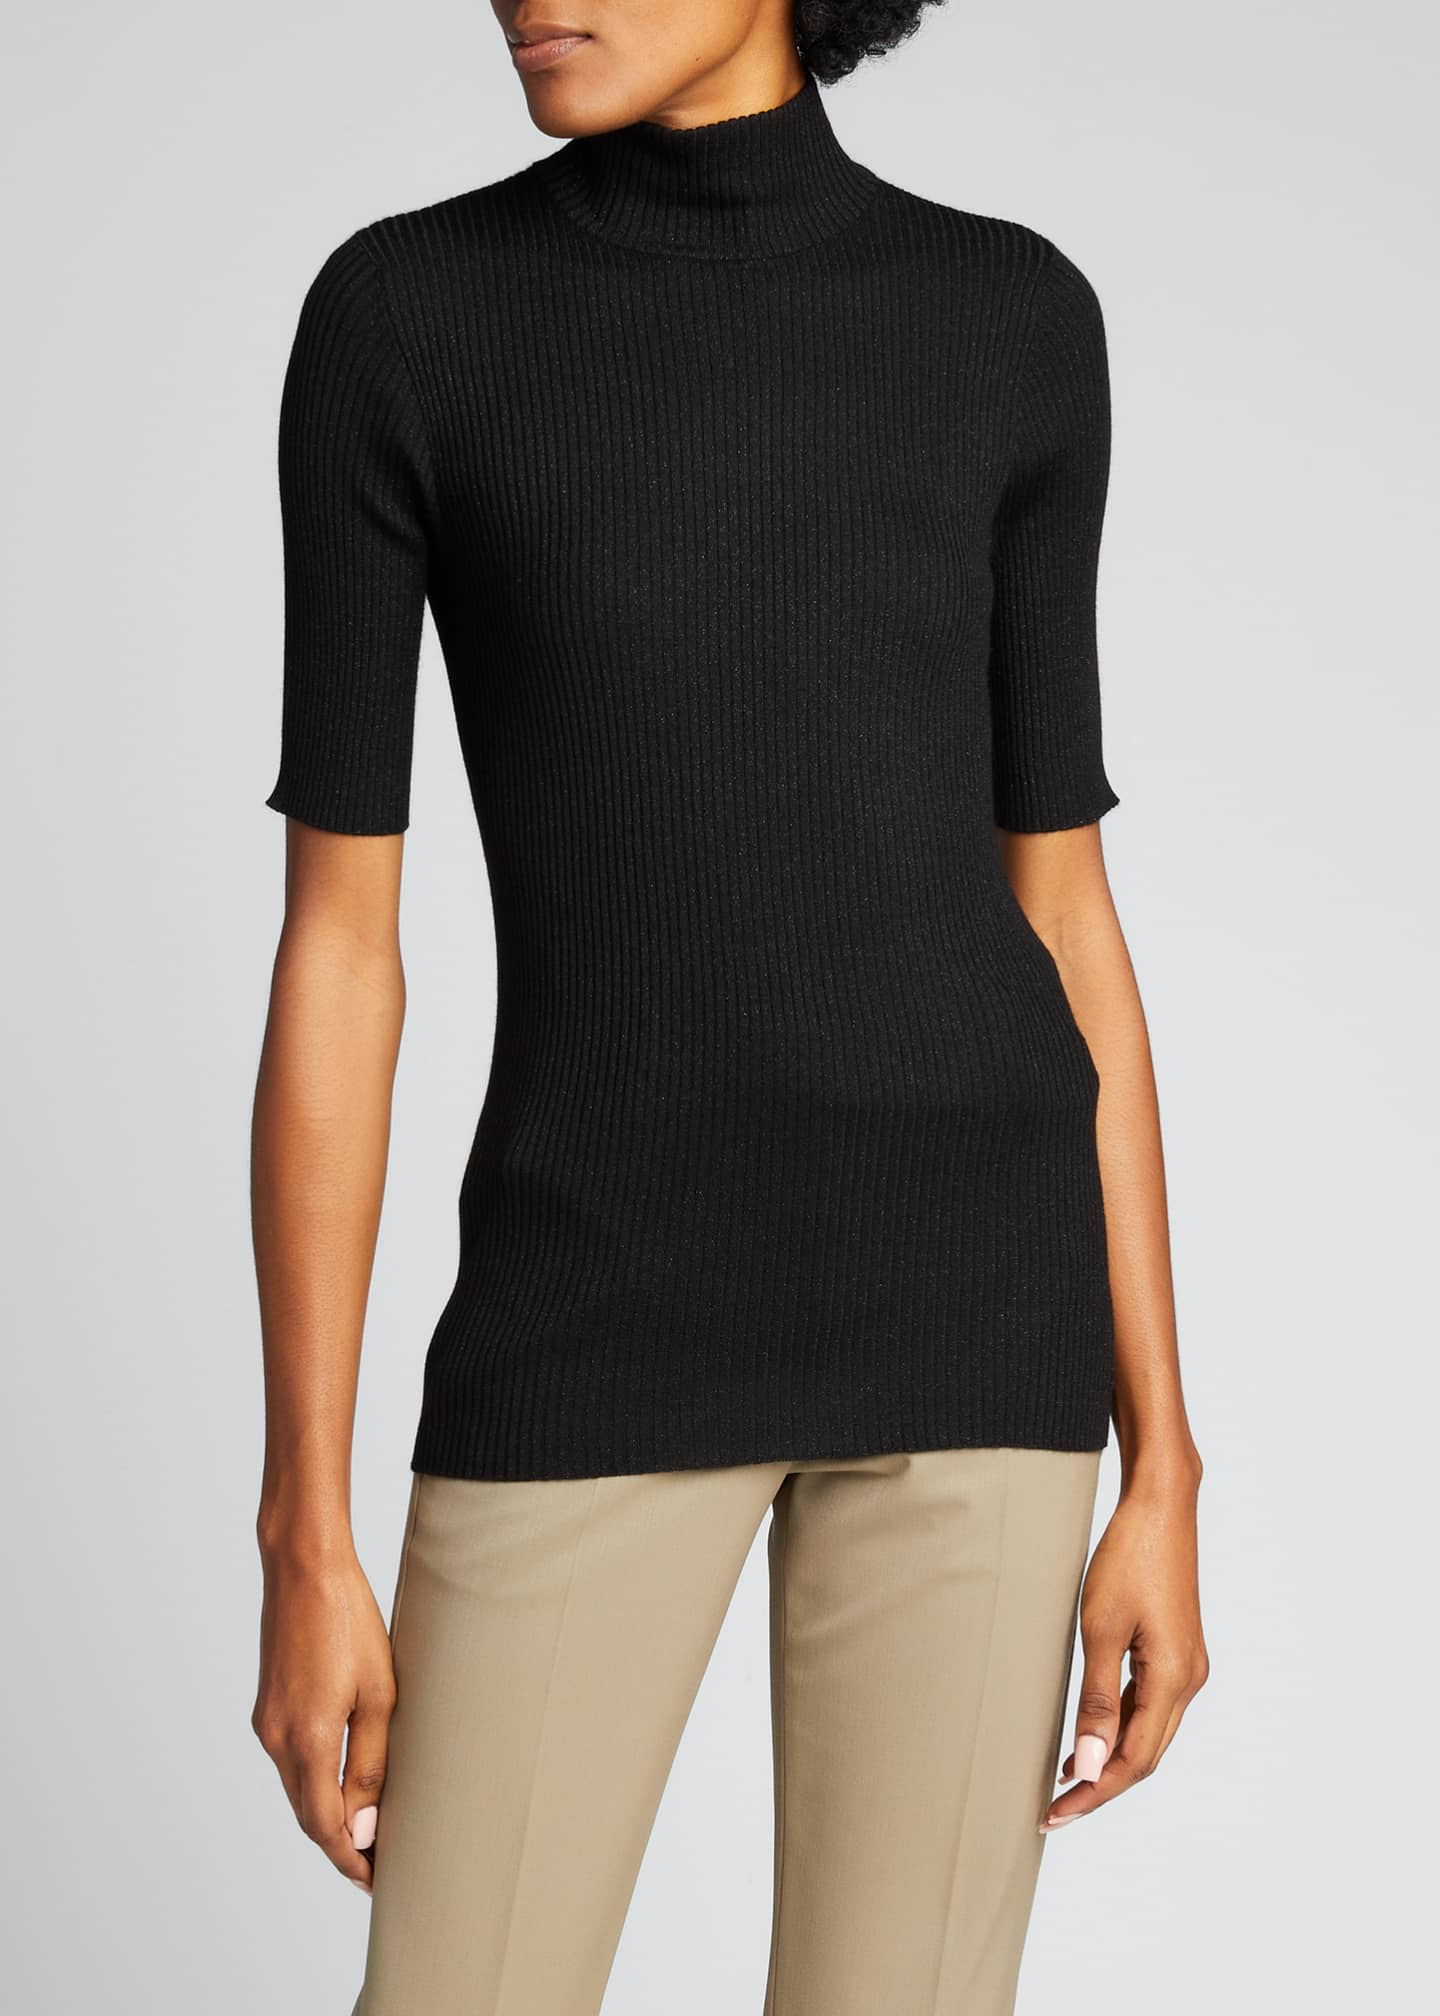 Image 3 of 5: Ribbed Lurex Fine Gauge Cashmere Sweater